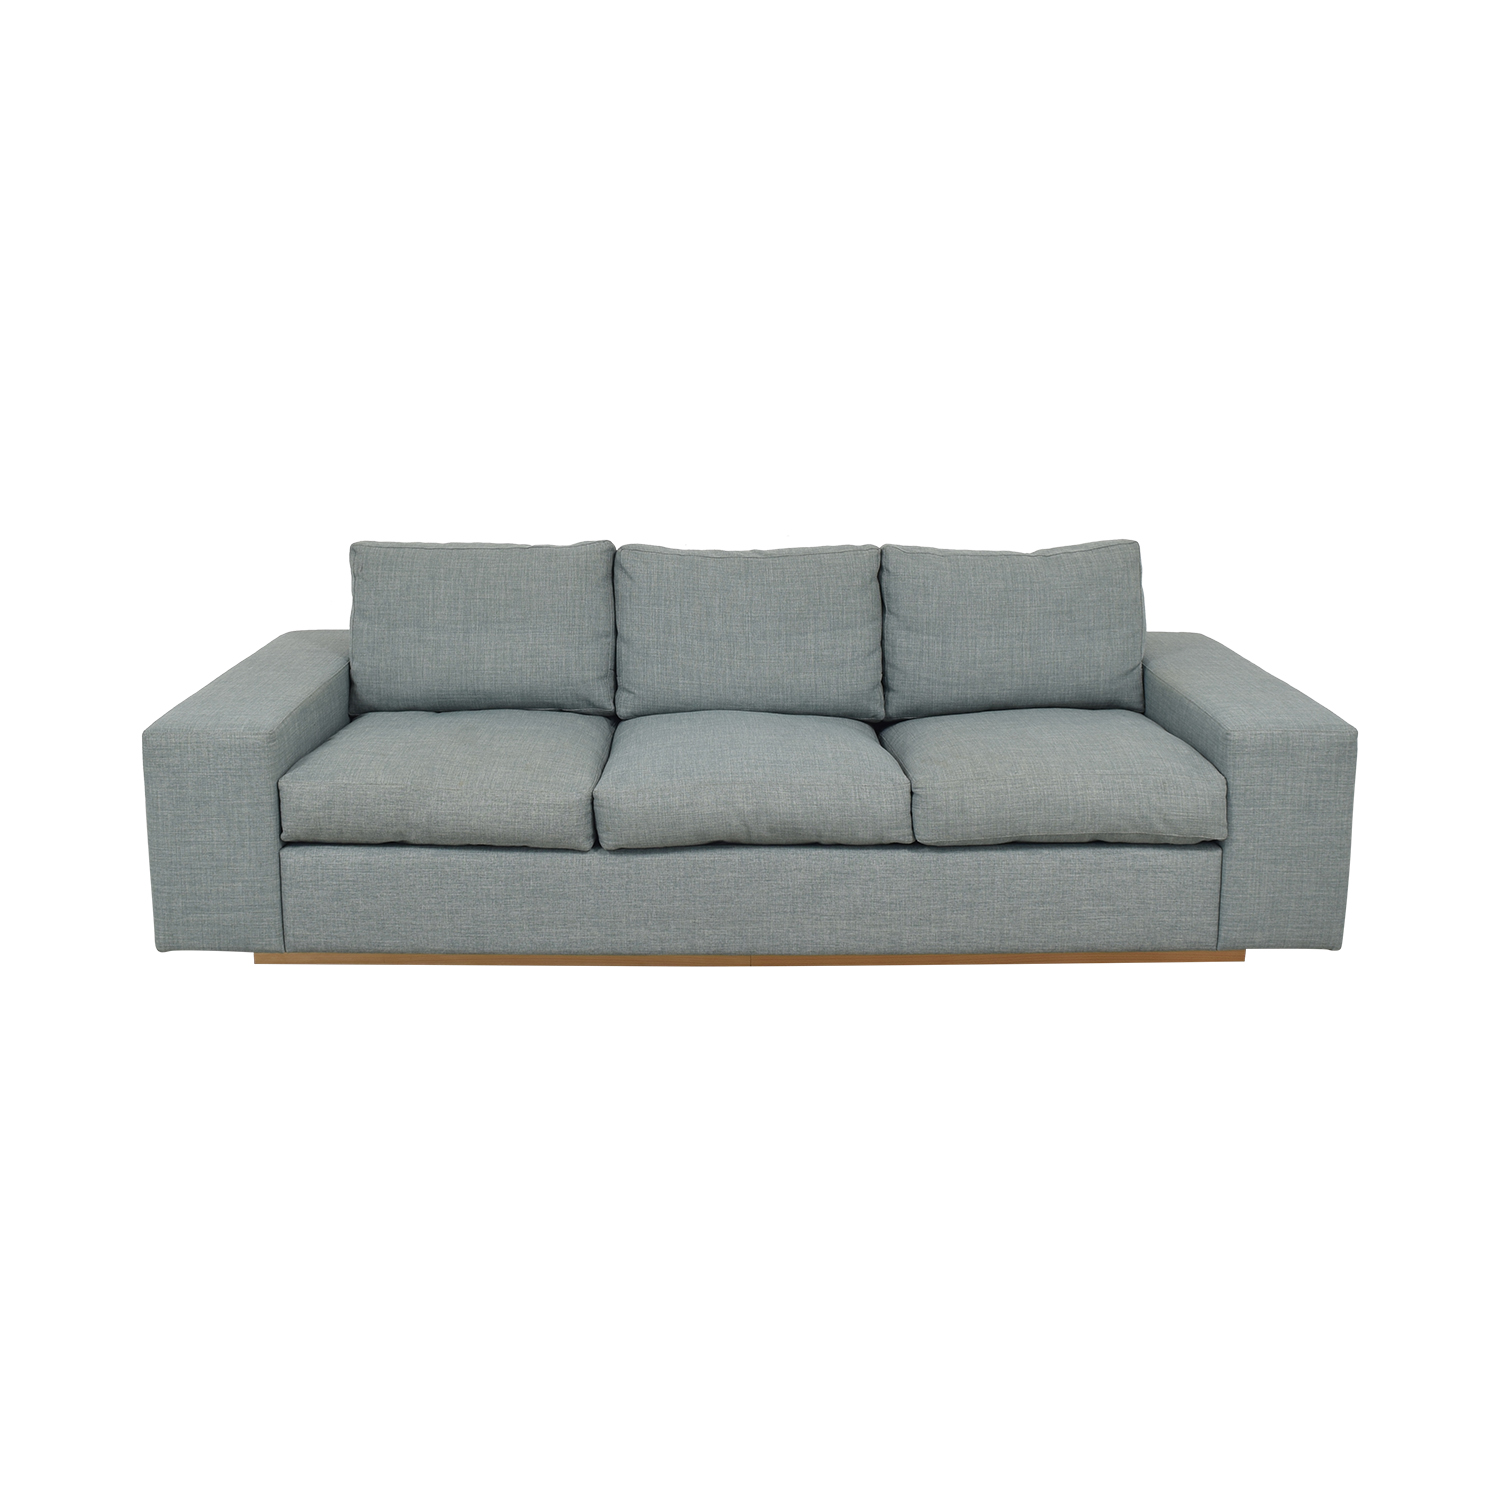 Three Cushion Modern Sofa for sale